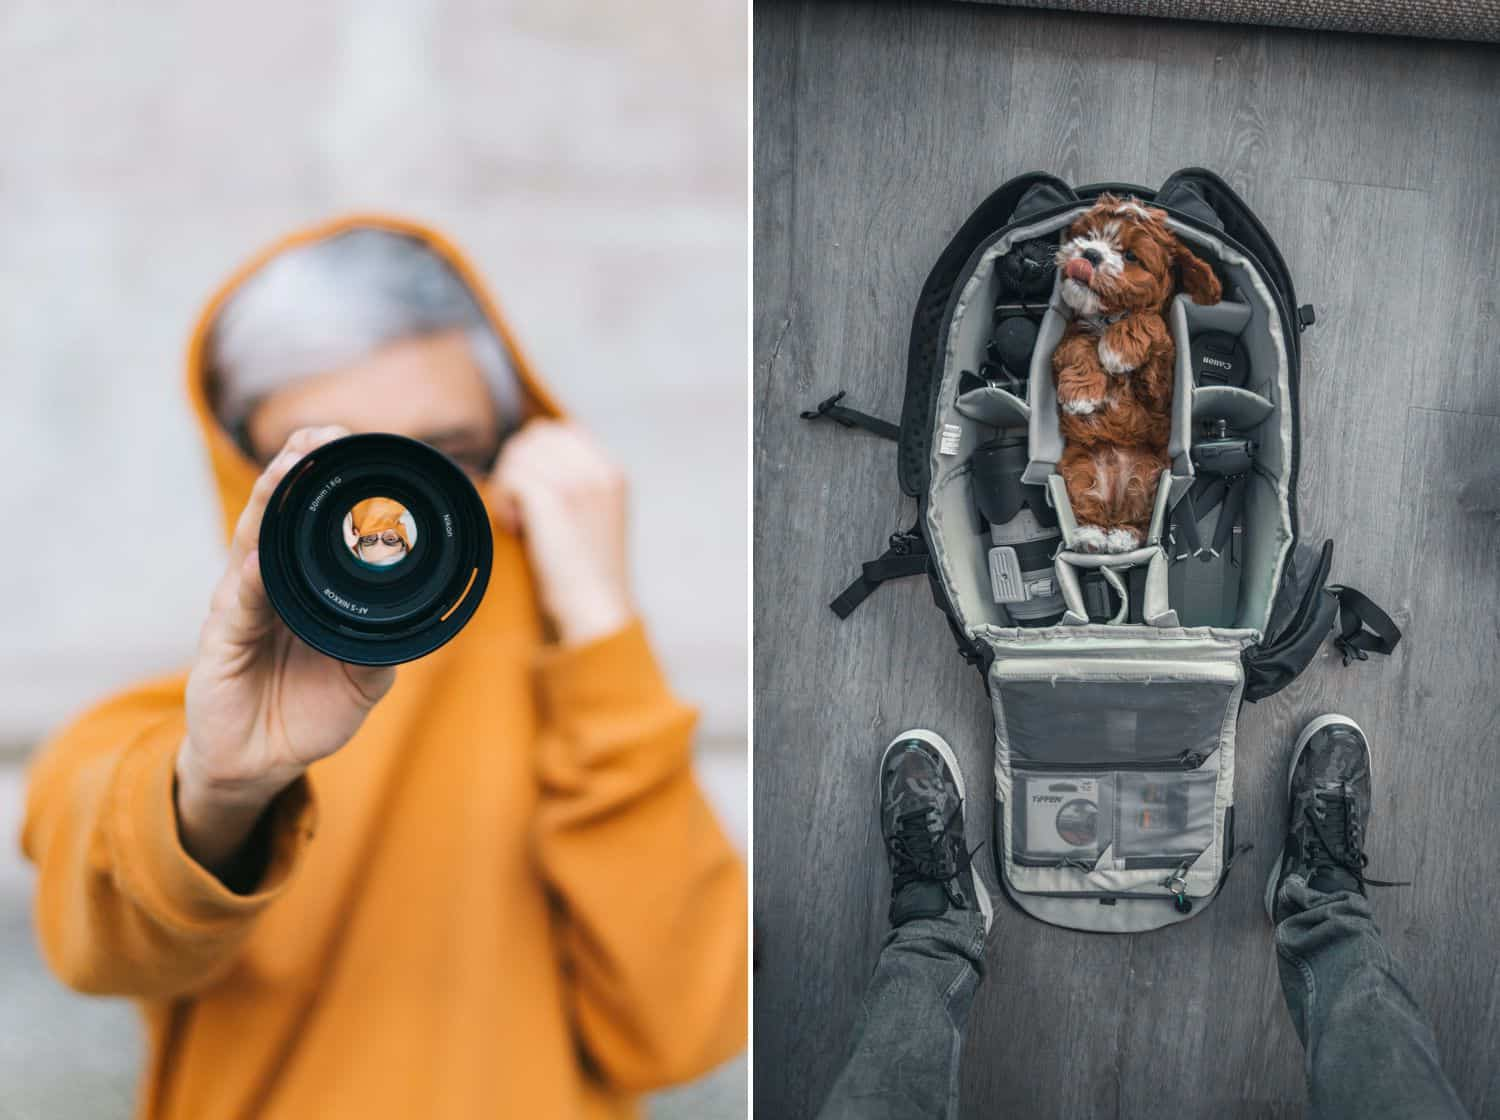 A person in an orange hoodie holds a lens in front of their face. A puppy lies in a section of a camera bag.